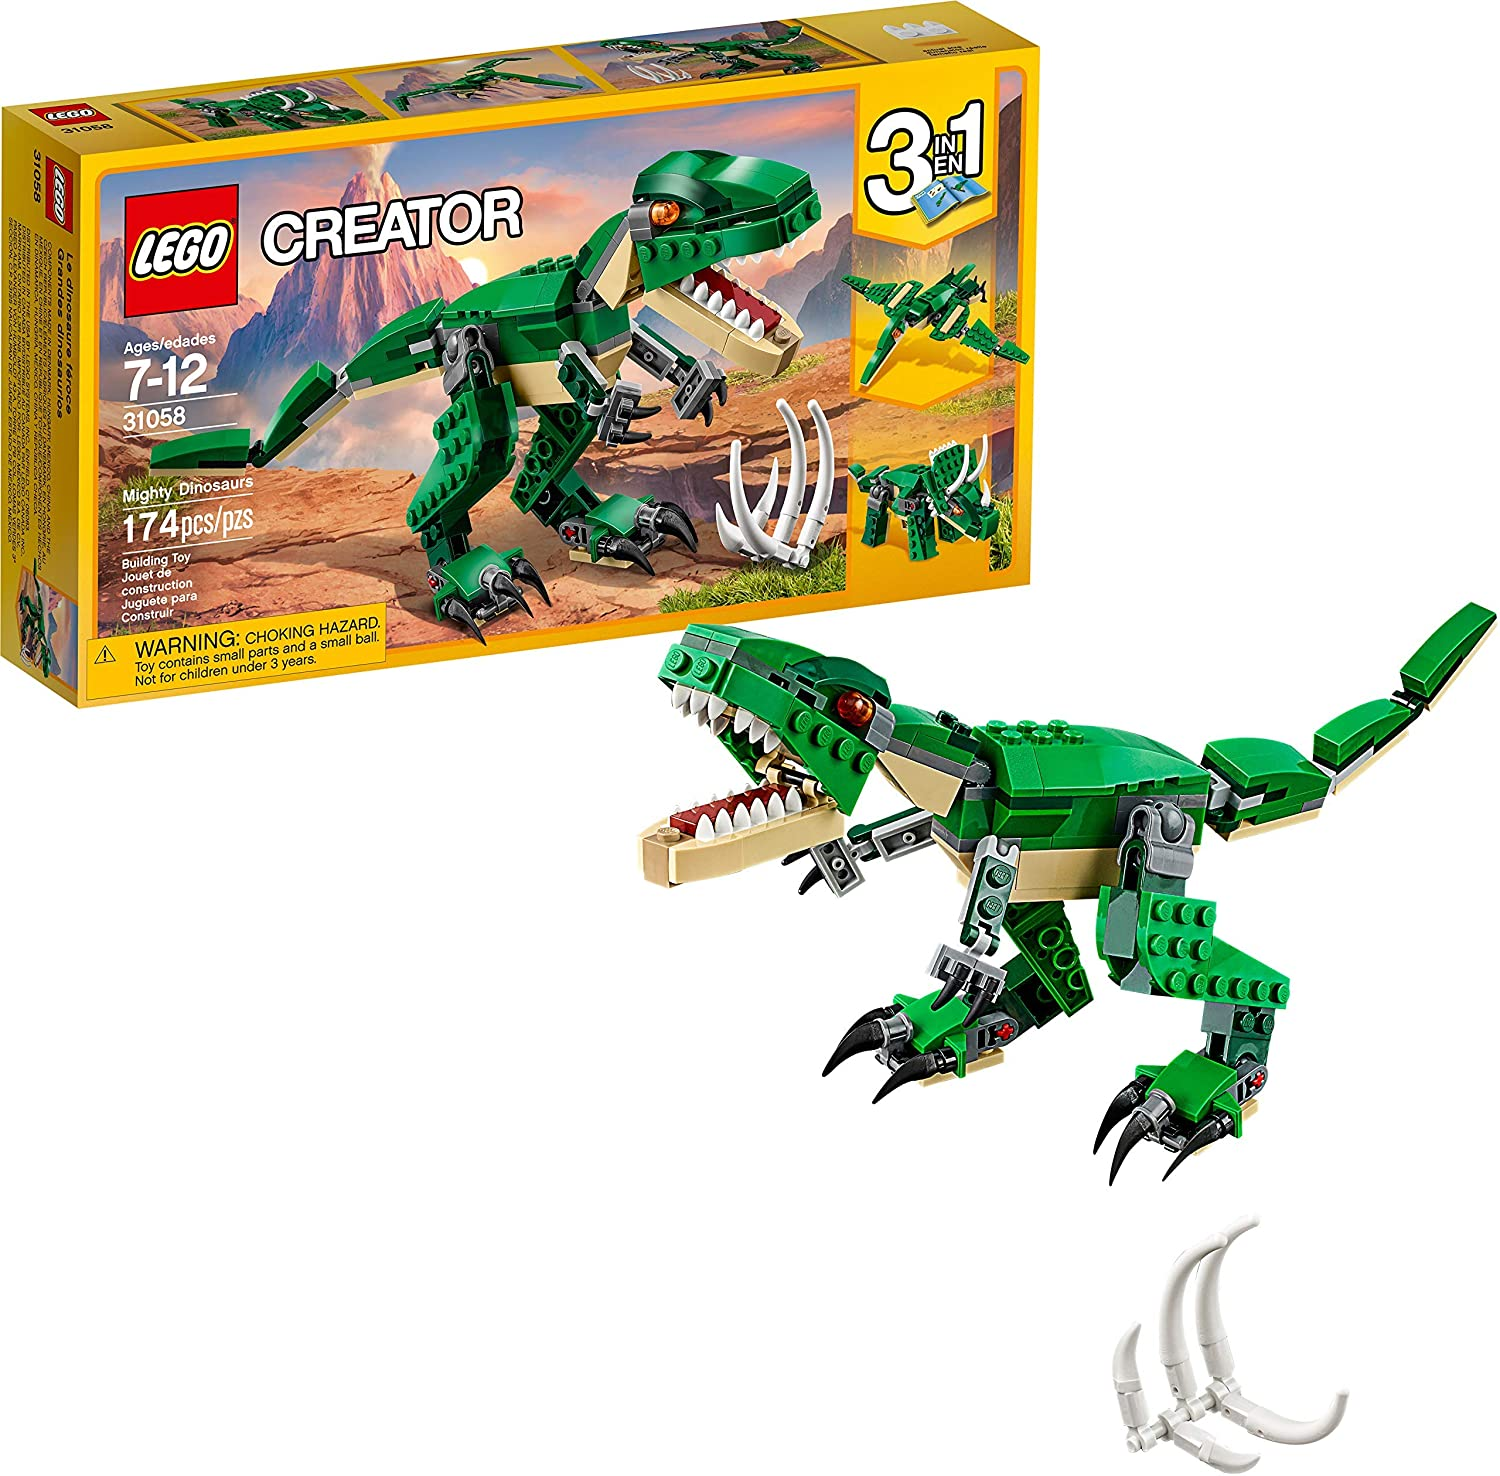 LEGO Creator Might Dinosaurs Build Set